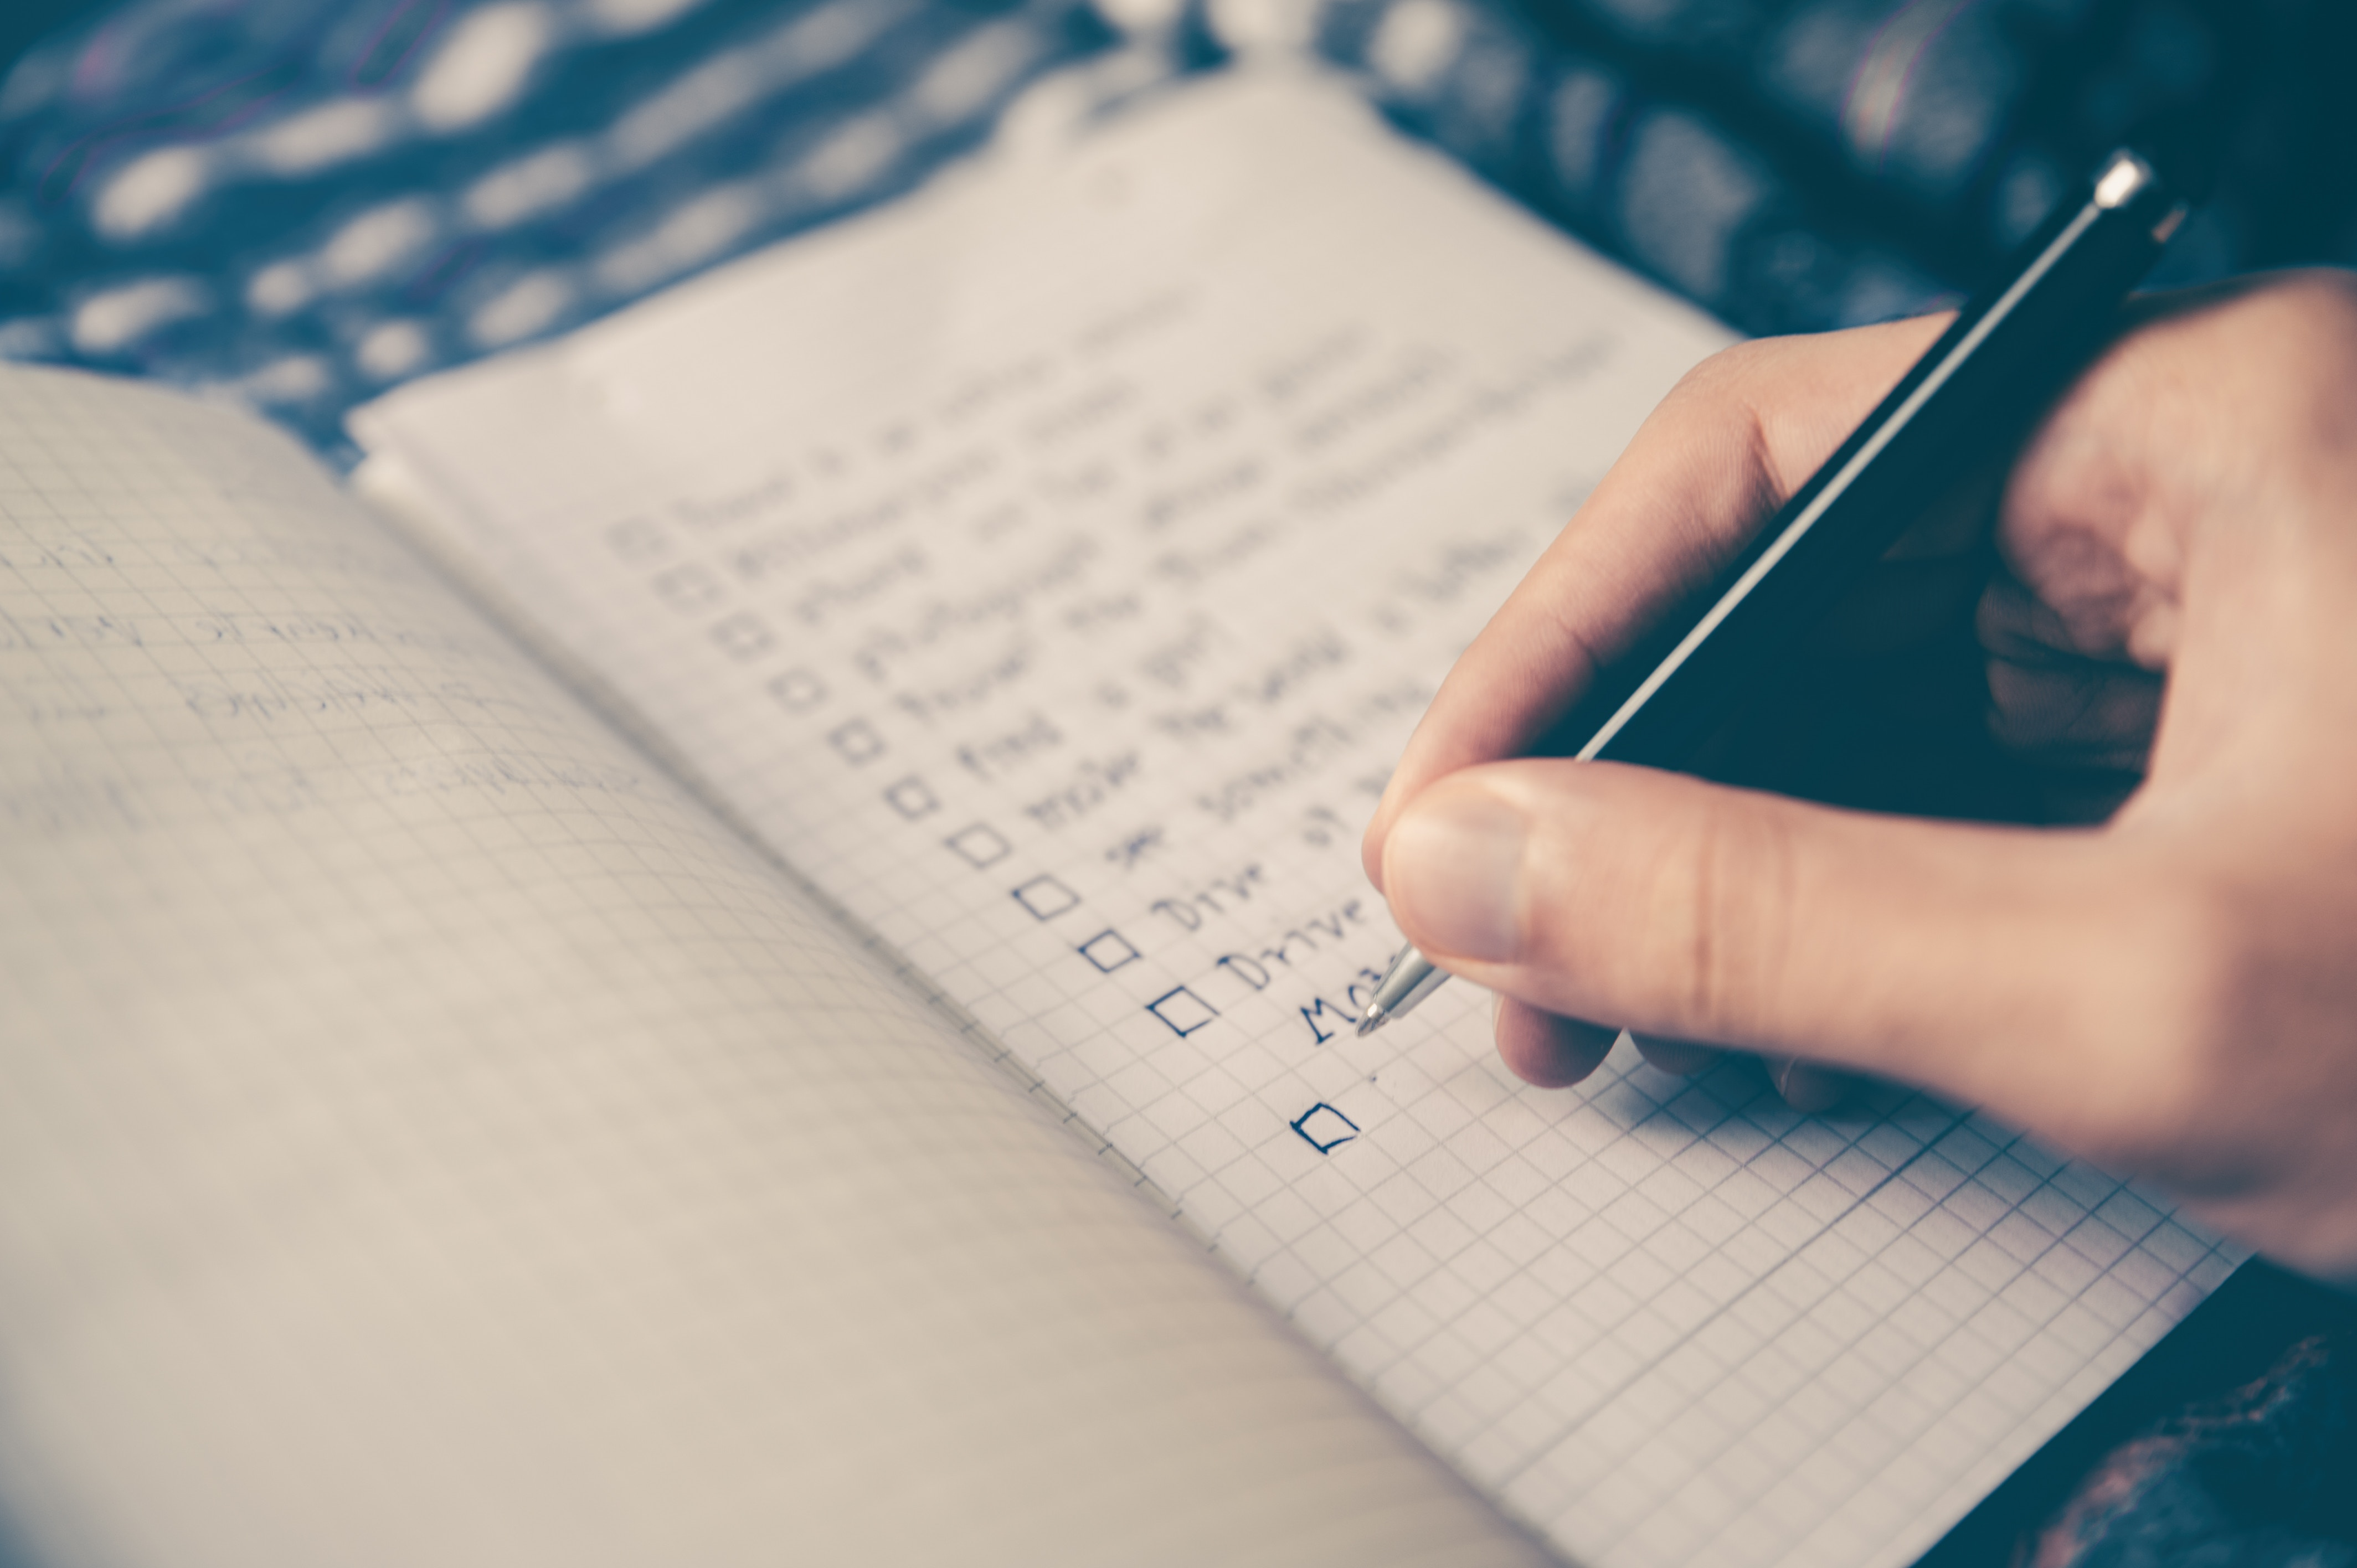 6 Things Every ActivePipe User Should Have On Their Email Checklist